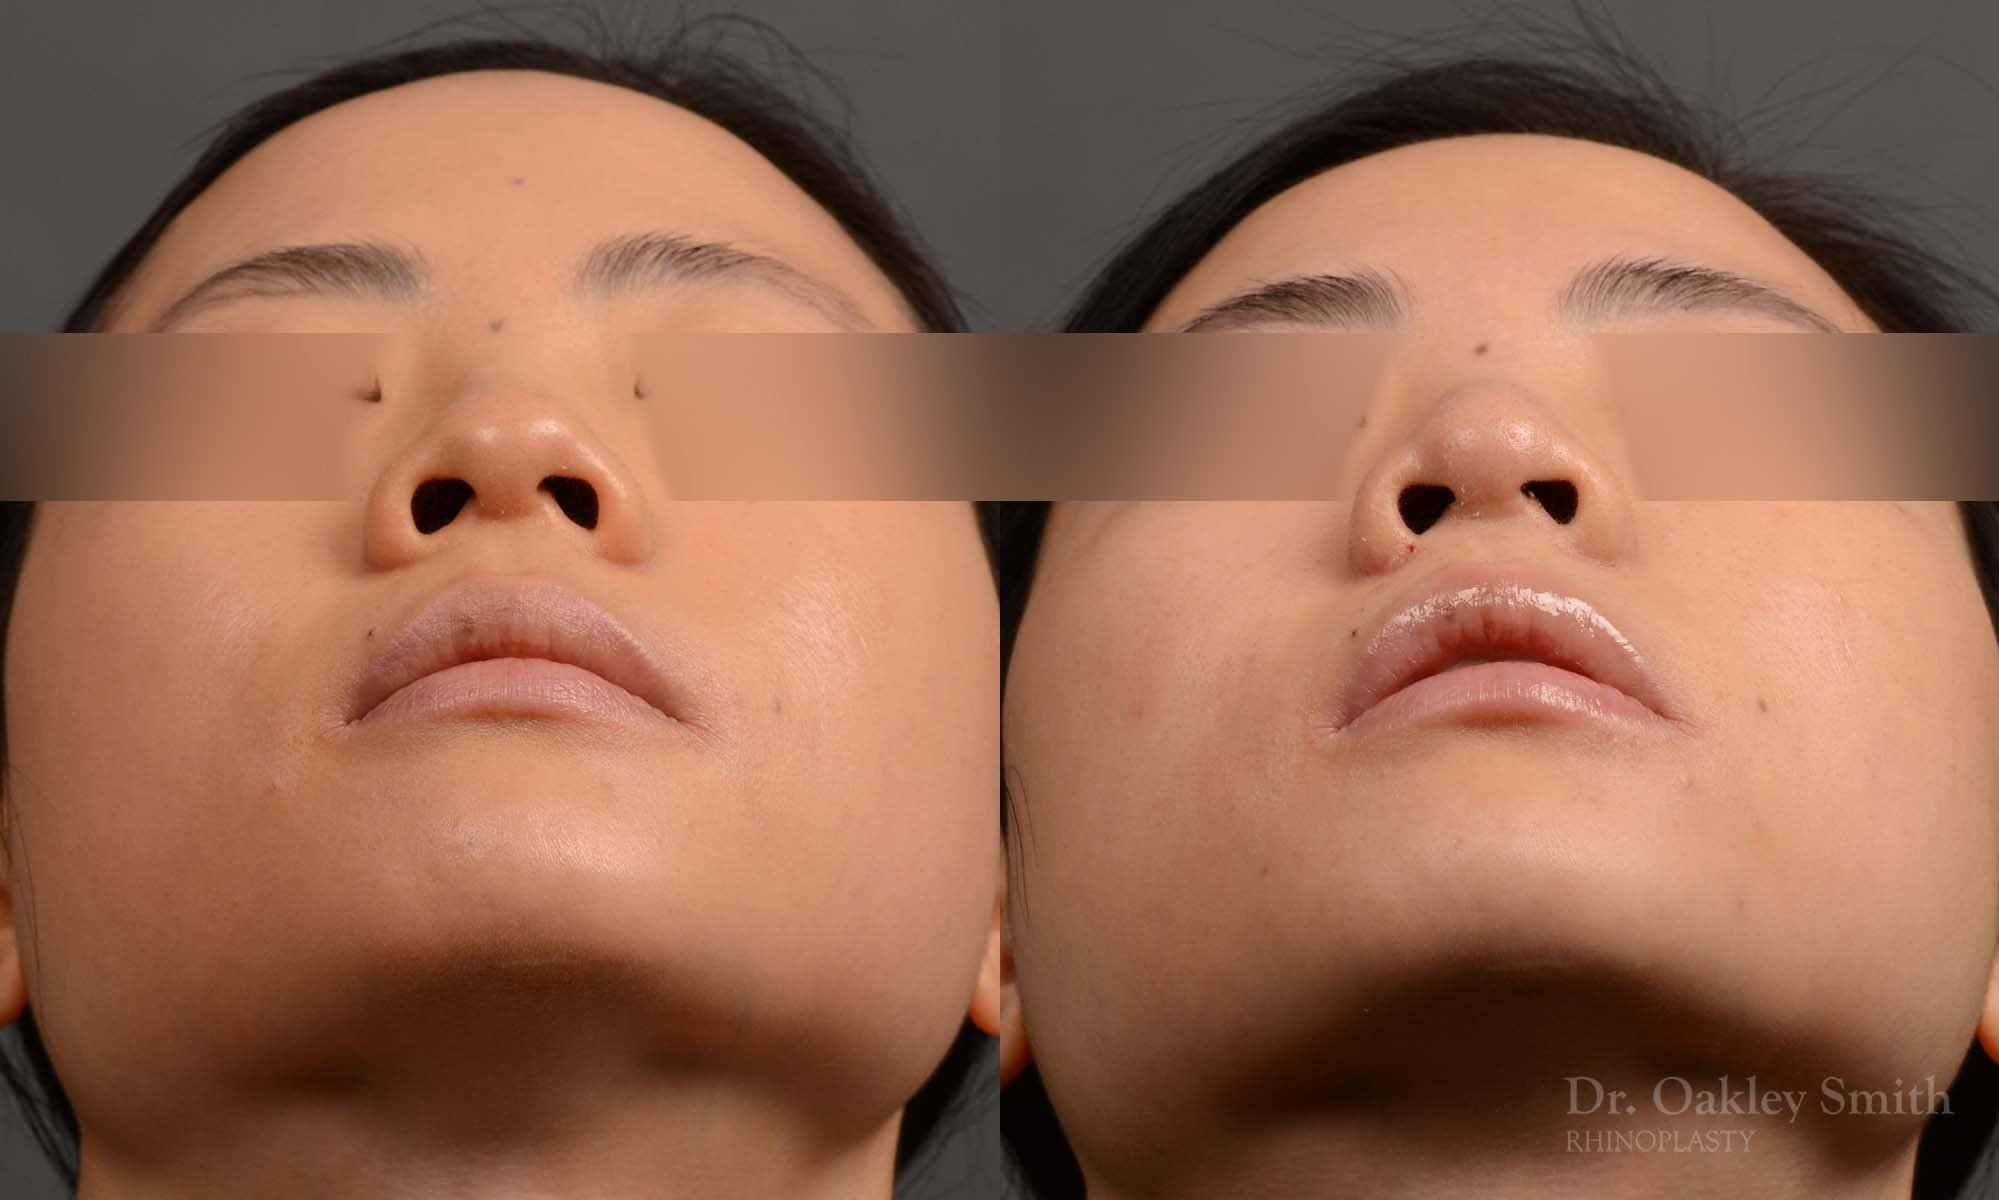 Rhinoplasty - Rhinoplasty Before and After Case 386